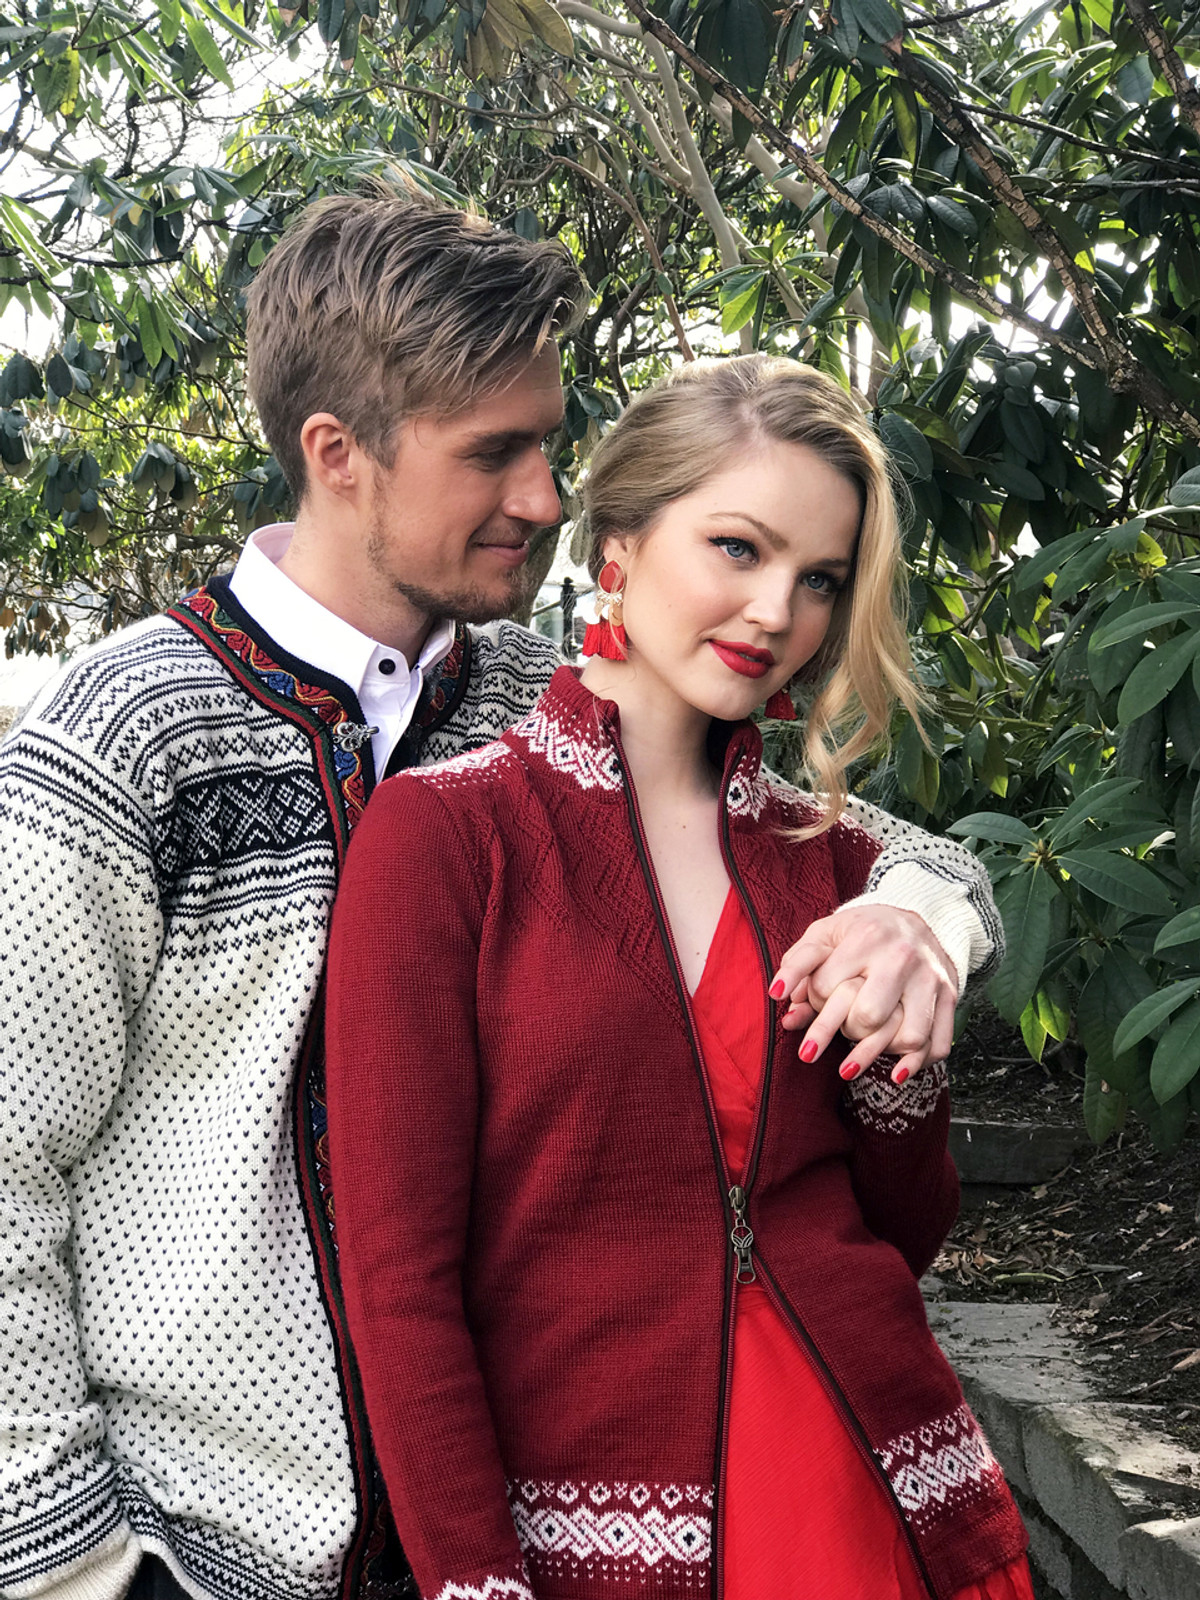 Man and woman in forest wearing Dale of Norway new unisex Setesdal cardigan in Off White/Black, 83291-A, and Bergen ladies cardigan in Red Rose/Off White/Navy, 83181-B